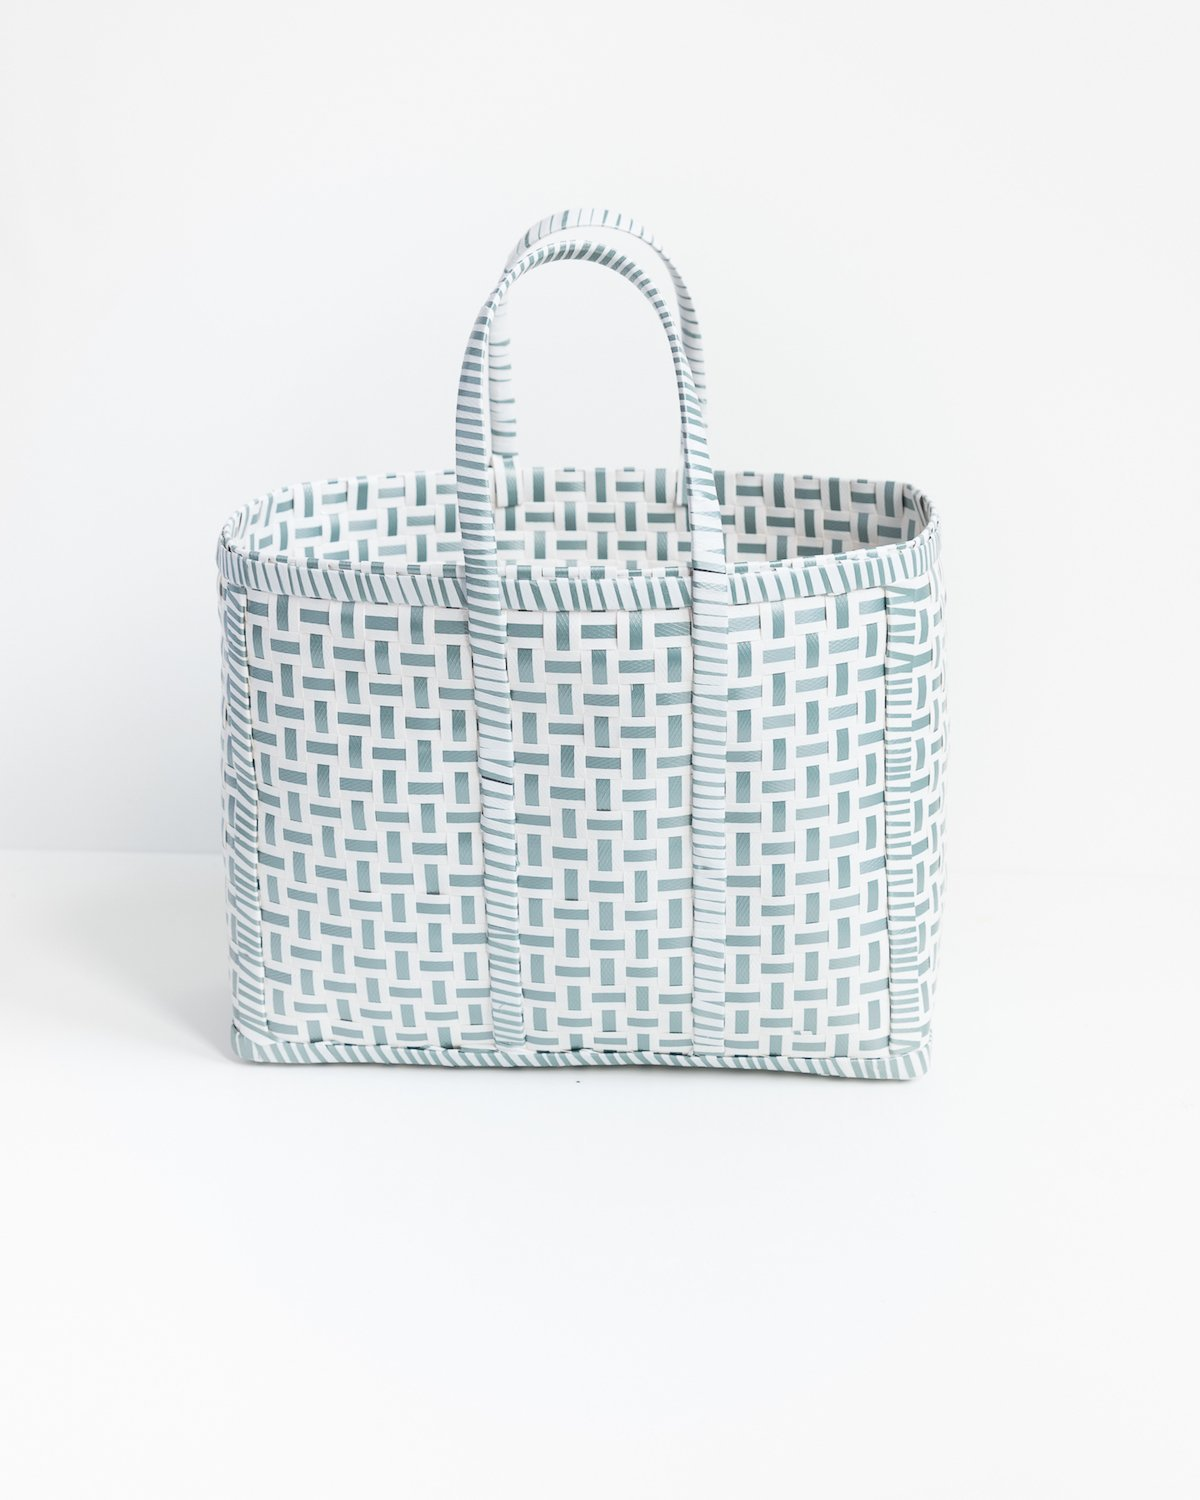 Original Basket in Grey & White - YGN Collective